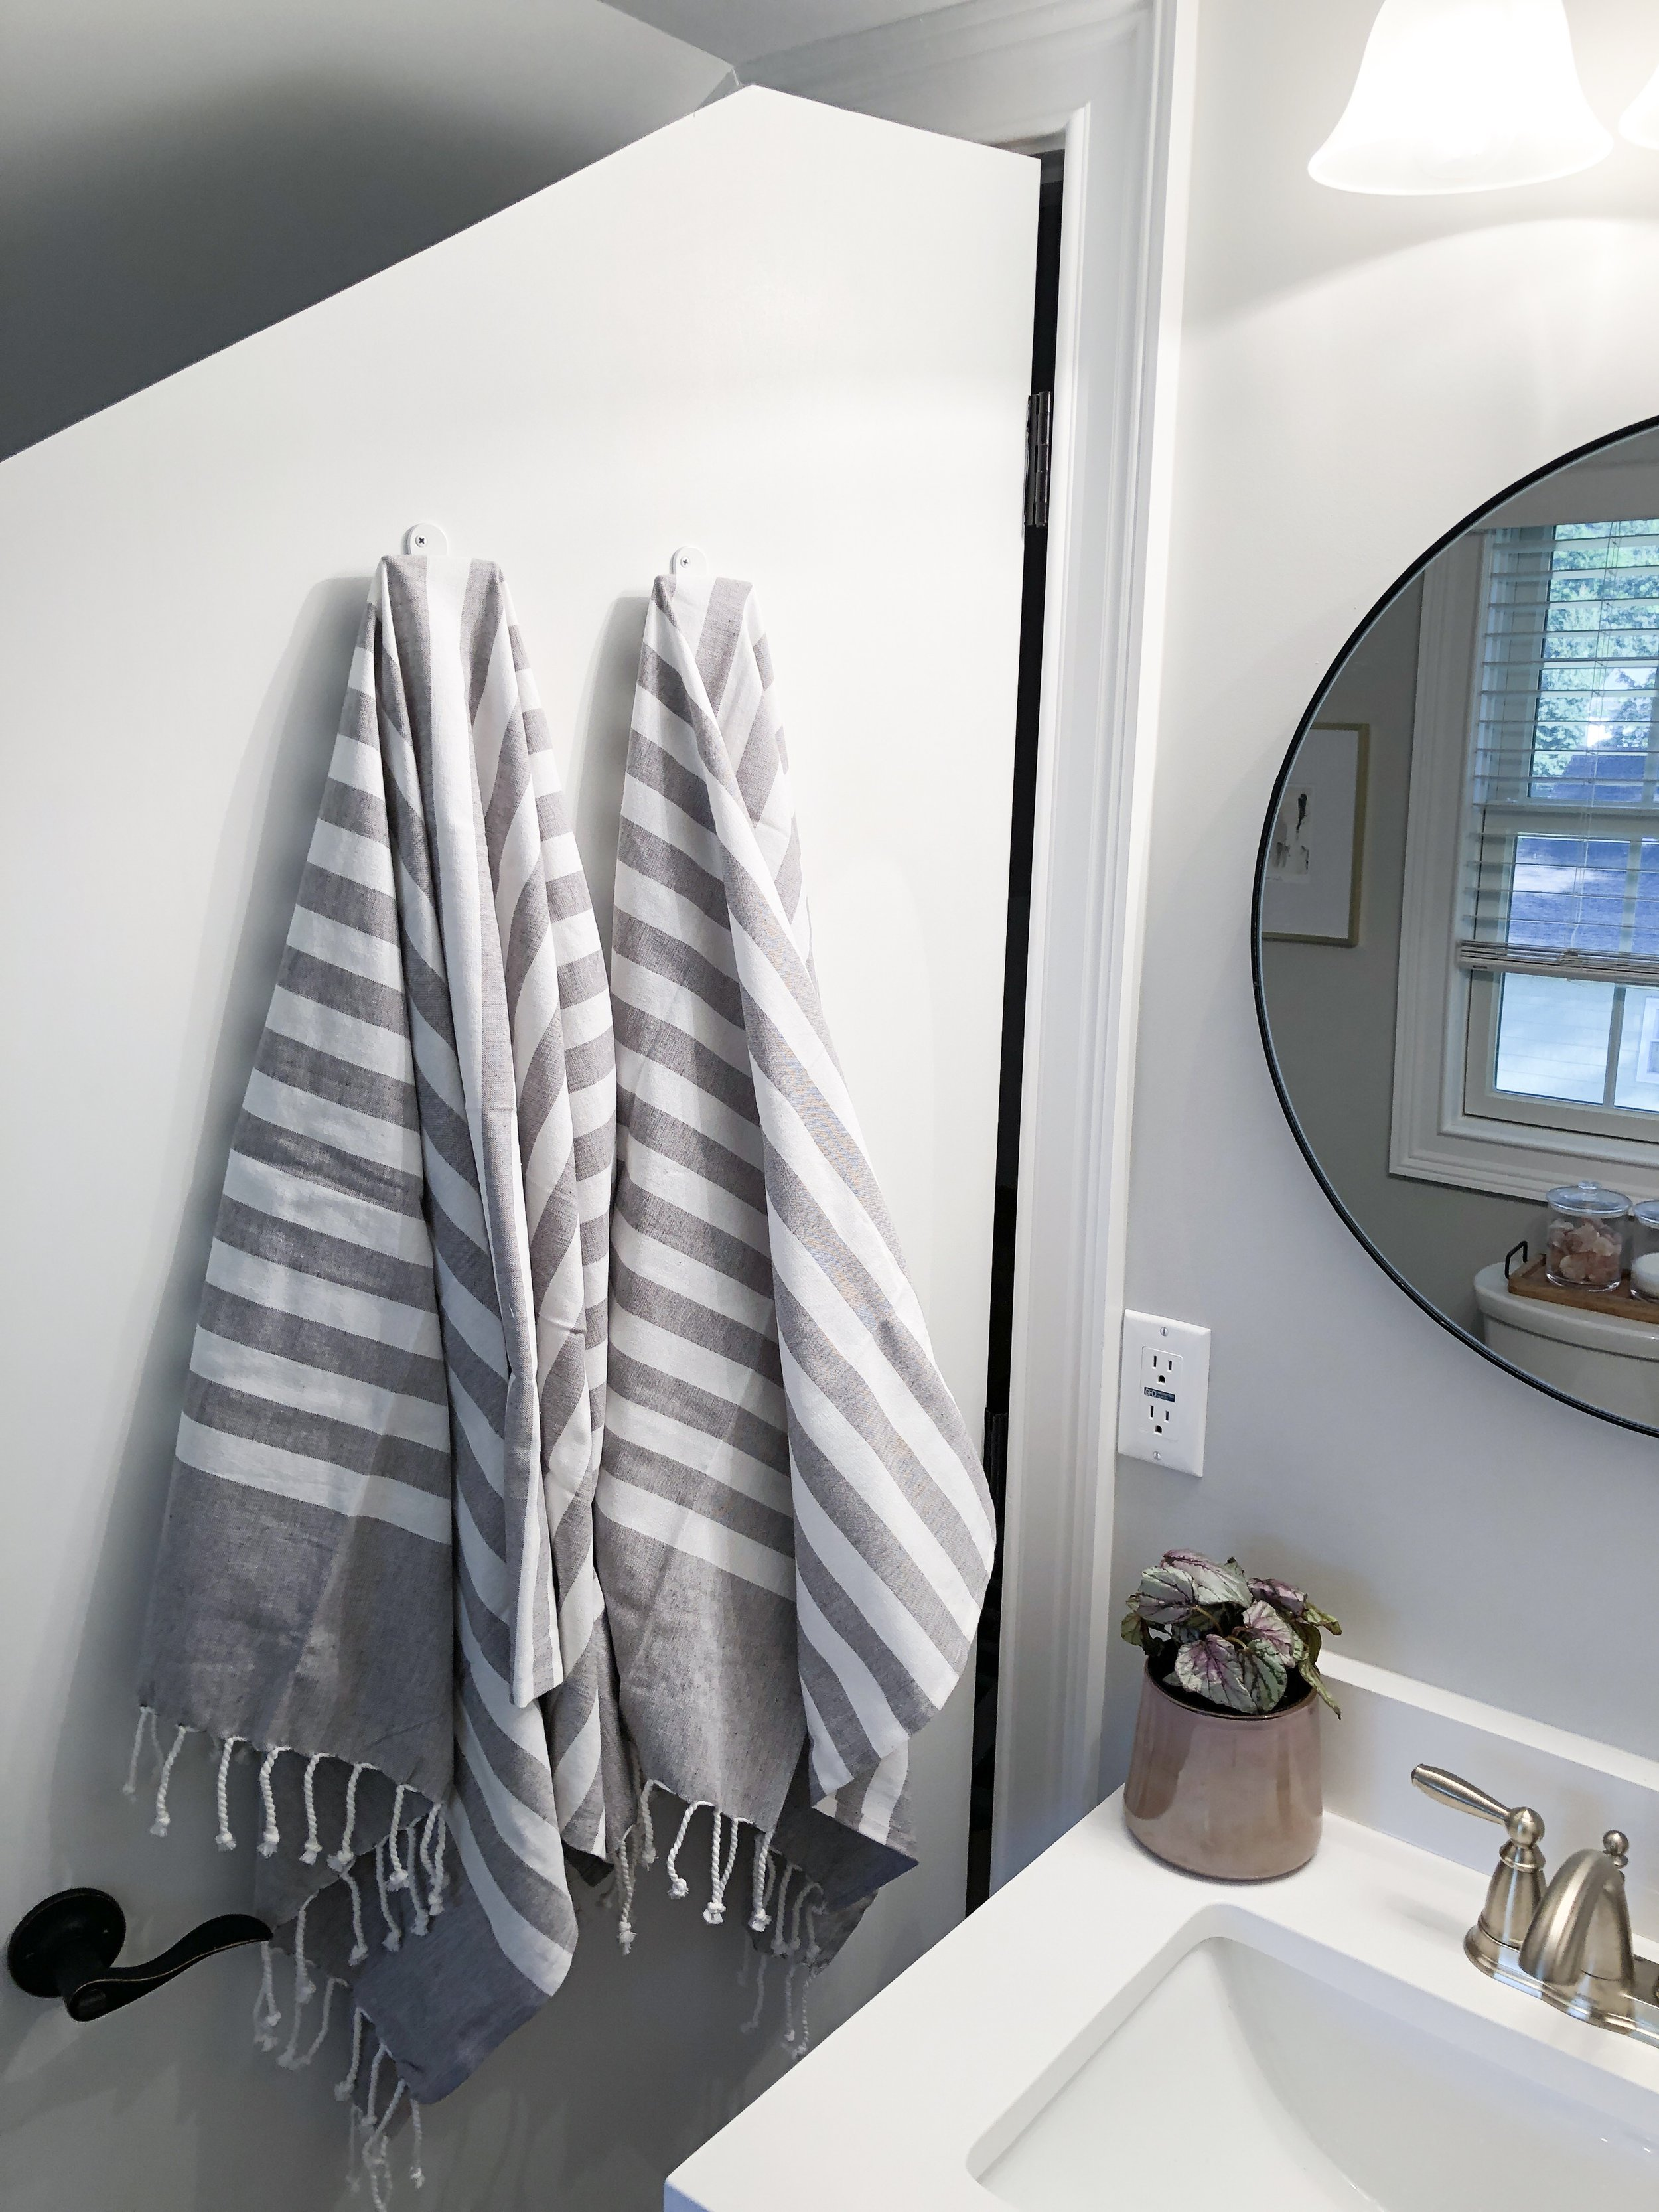 Flouta towels for the win! Love how light and absorbent these are.